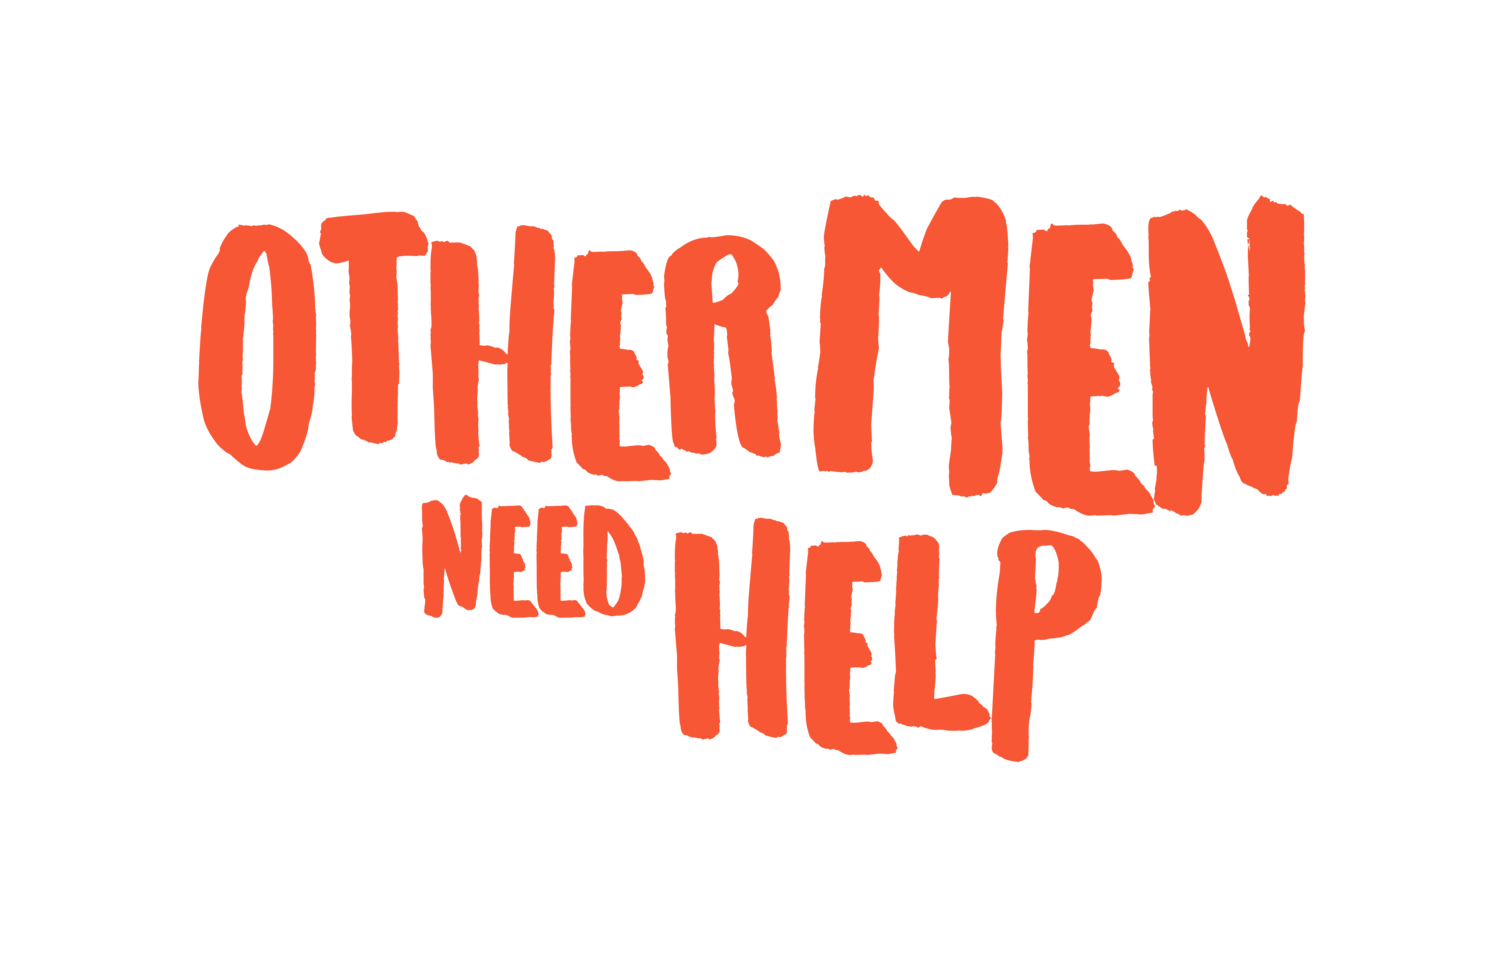 Other Men Need Help